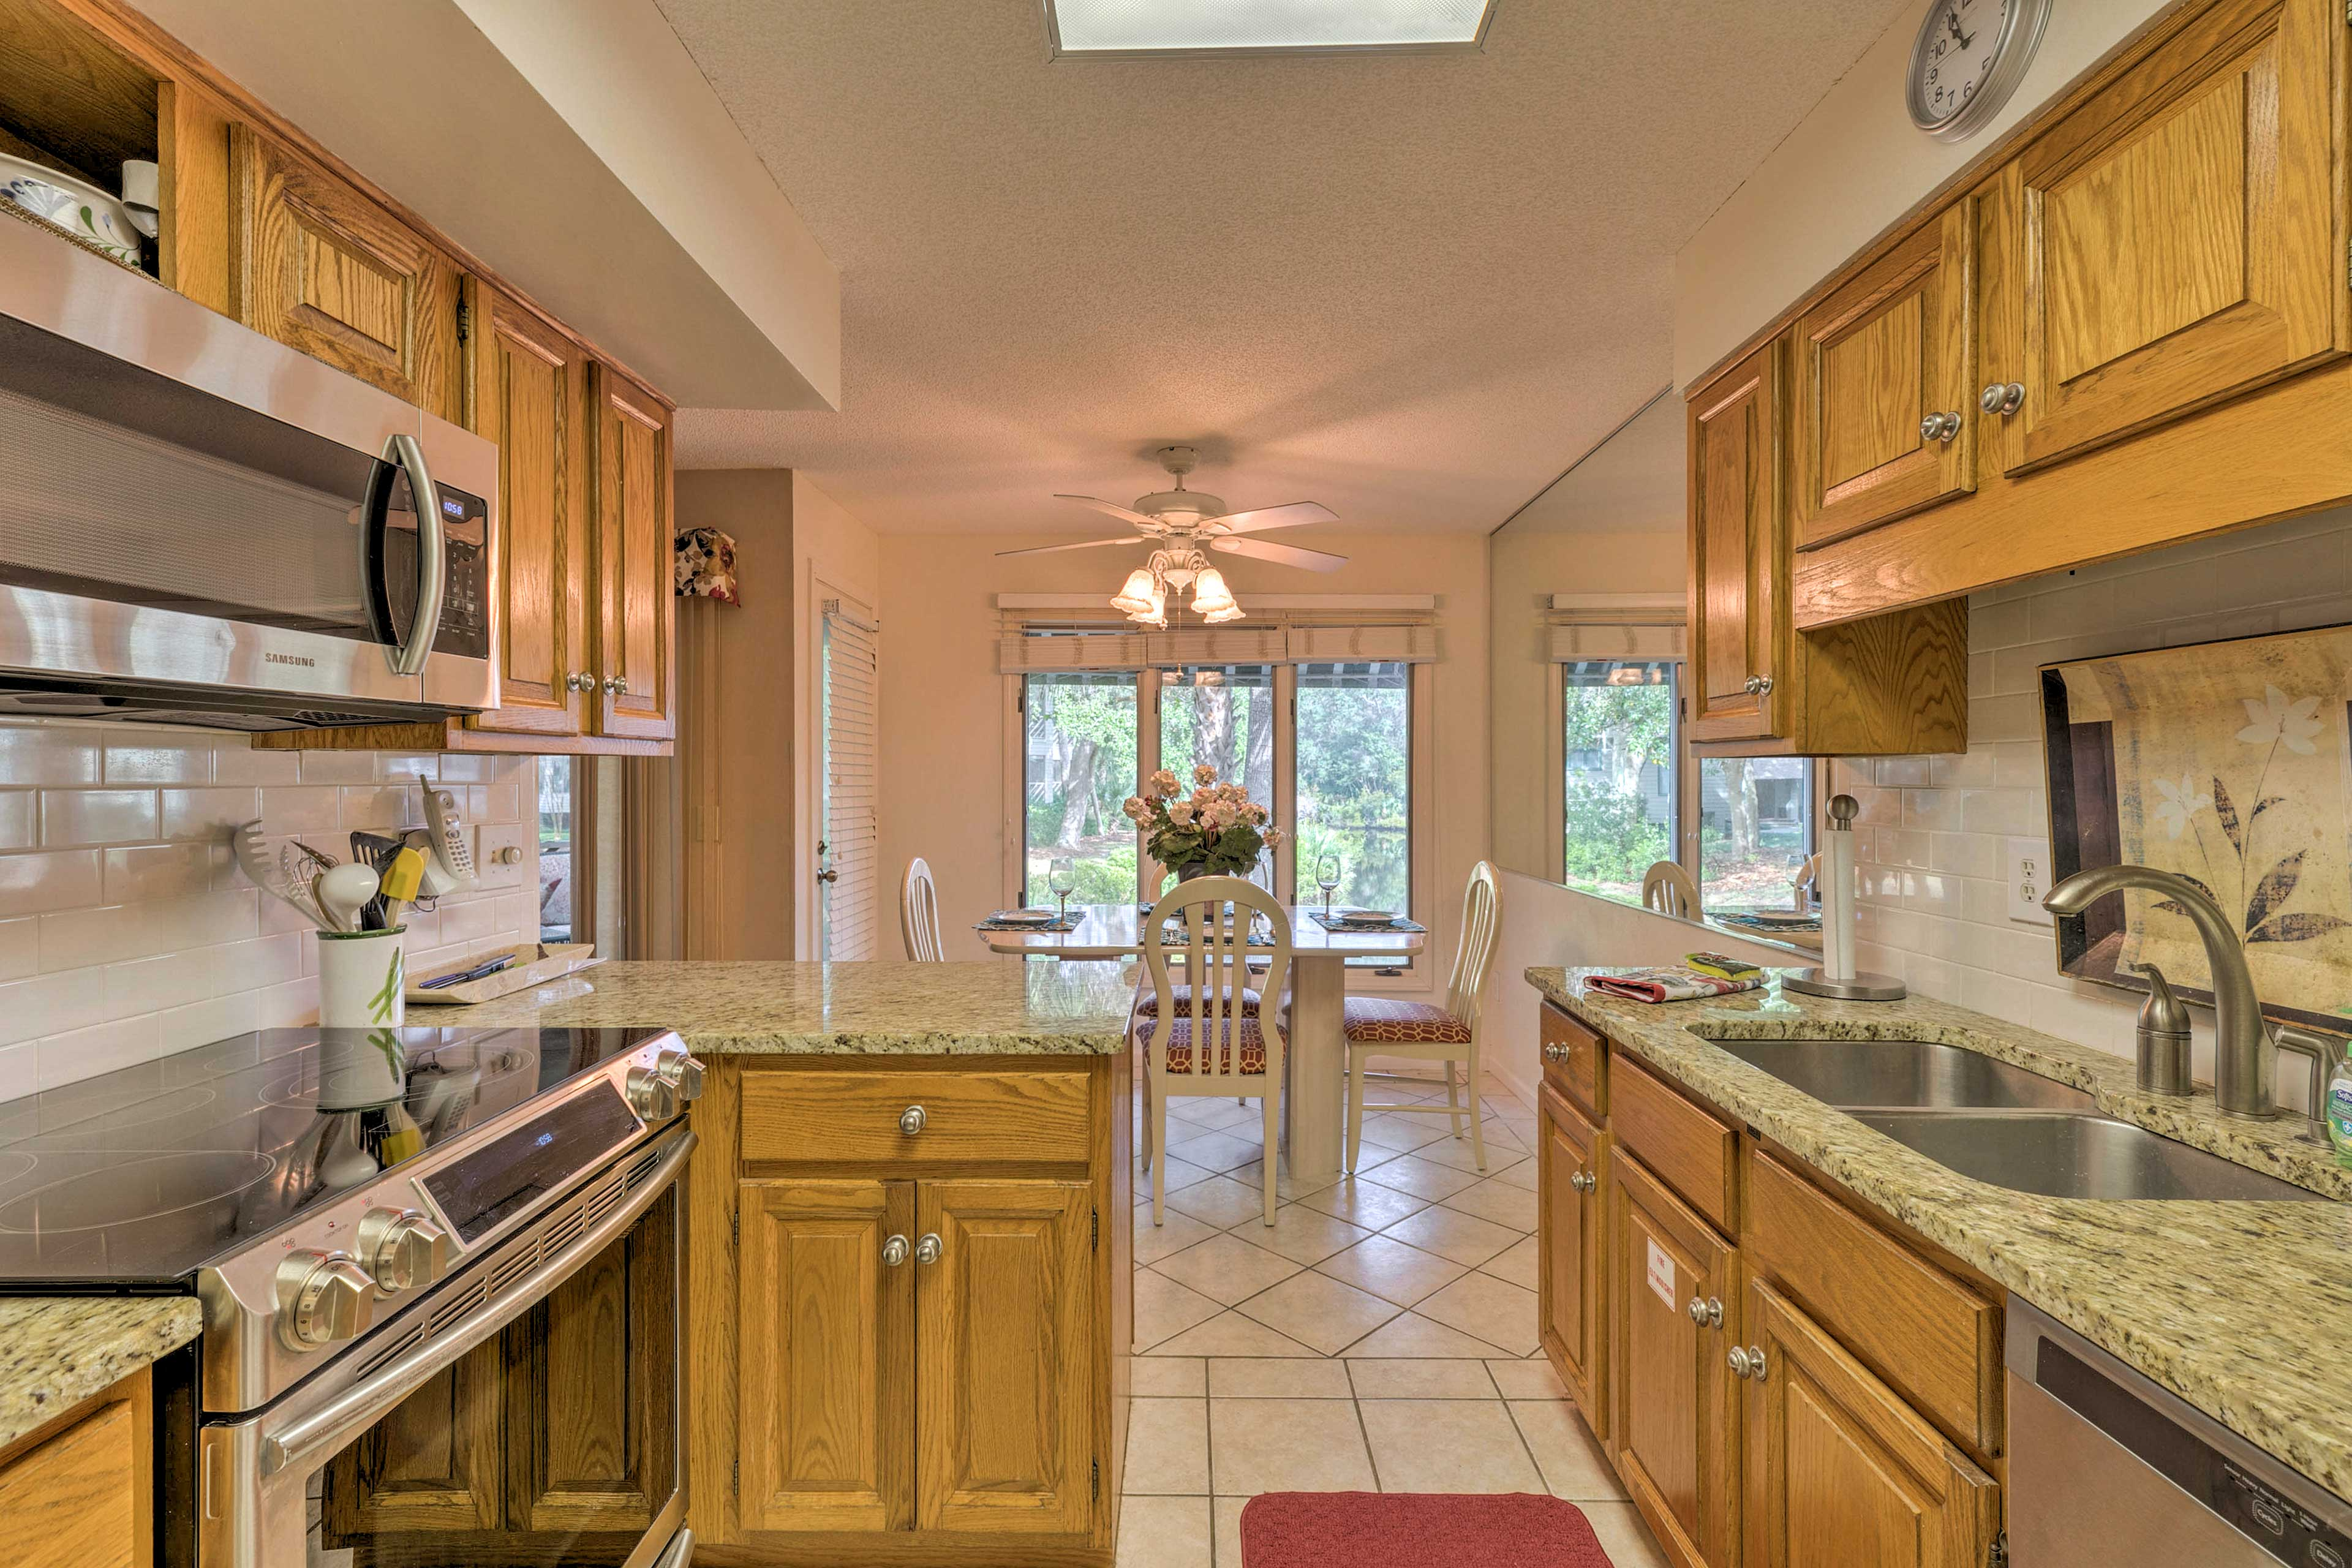 The stainless steel appliances make cooking a breeze!